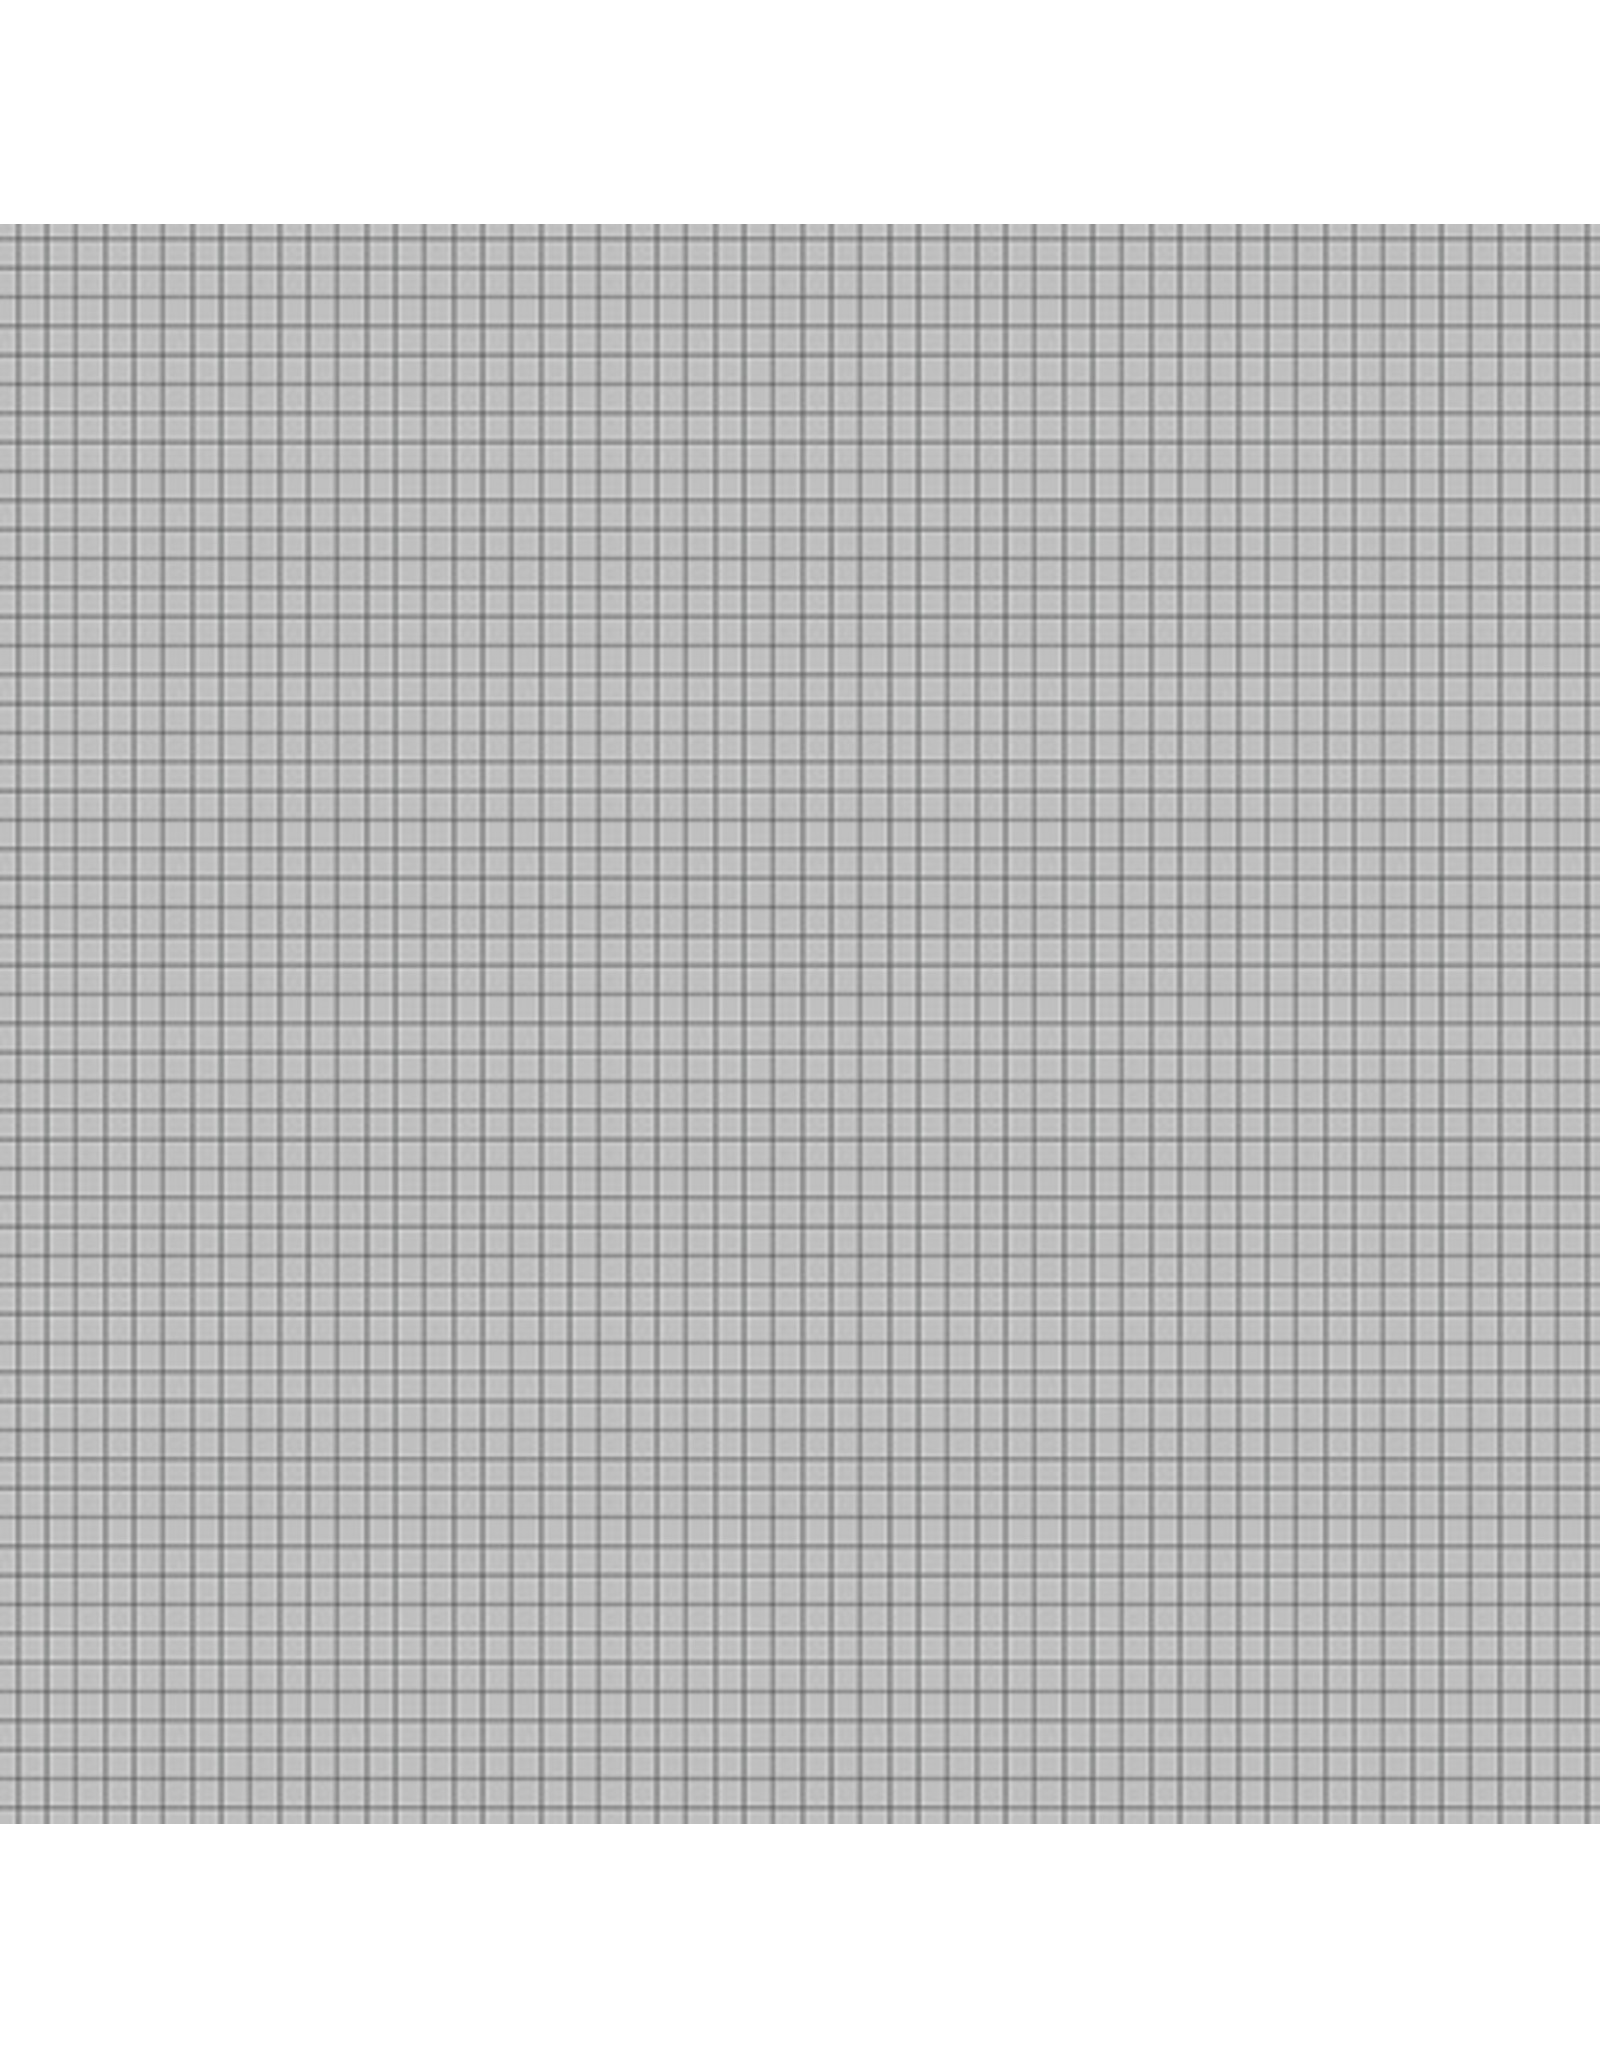 Contempo Gridwork - Square Grid Gray